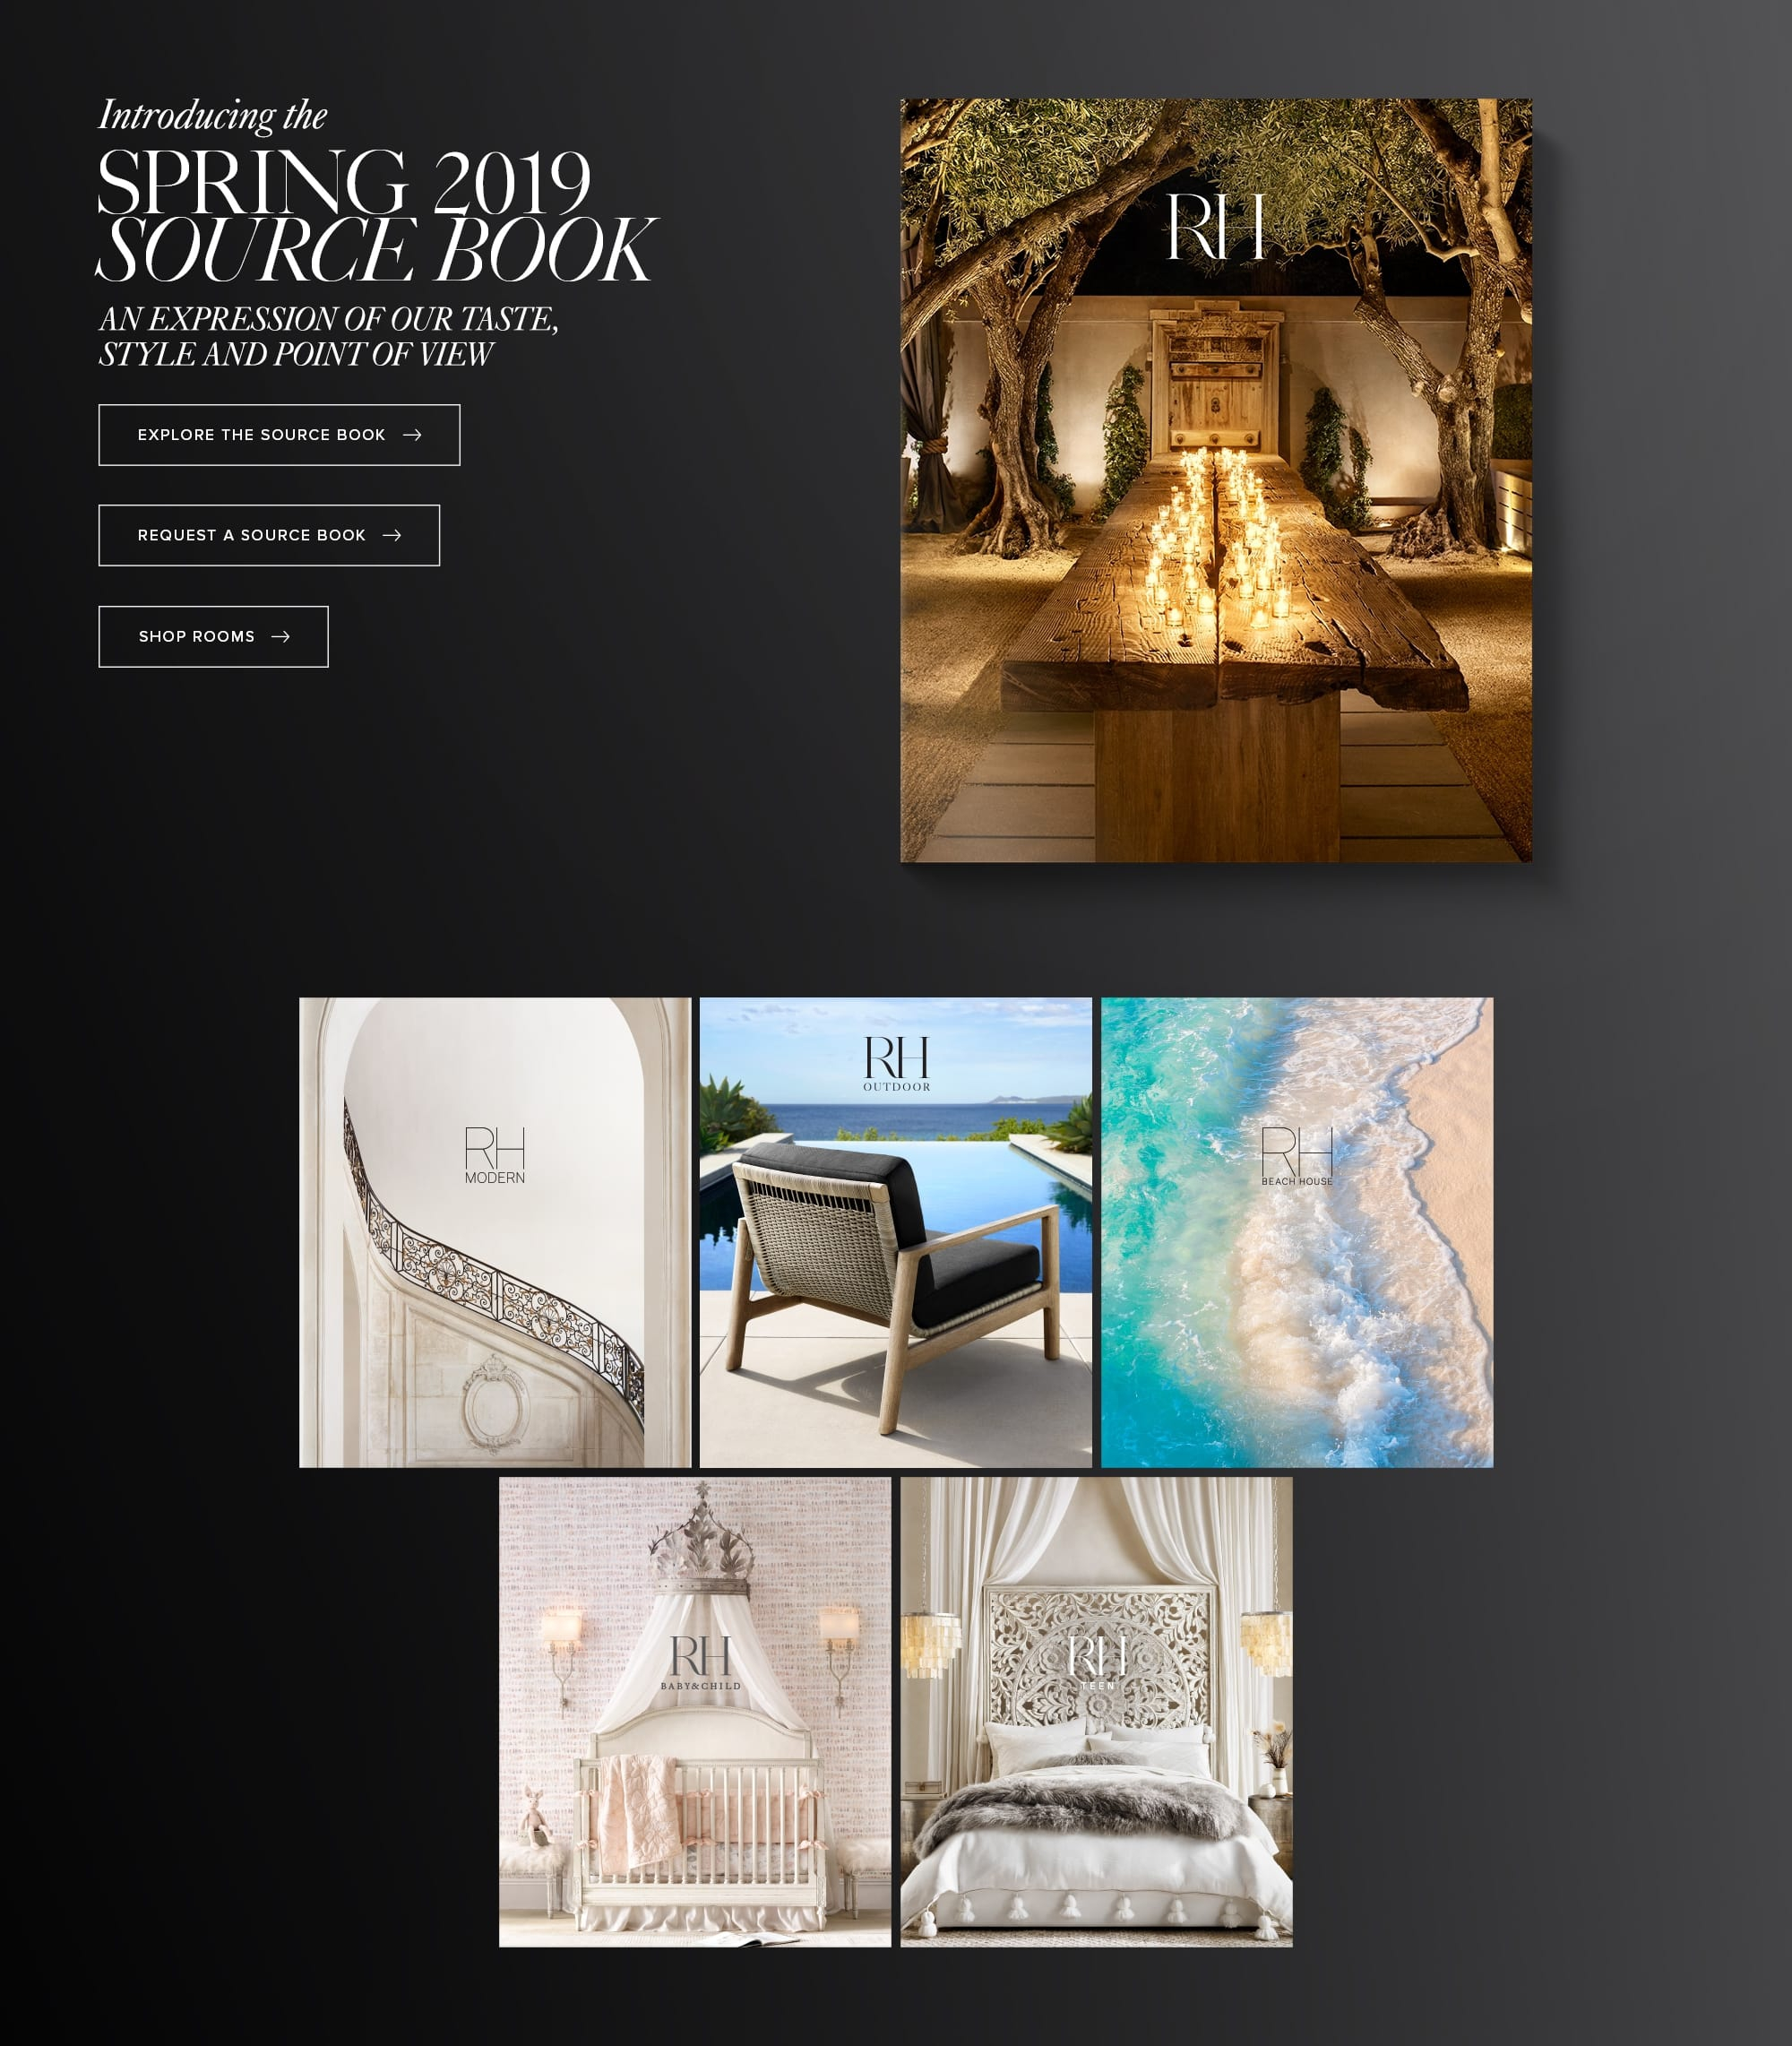 Explore our Sourcebooks. An expression of our taste, style and point of view.